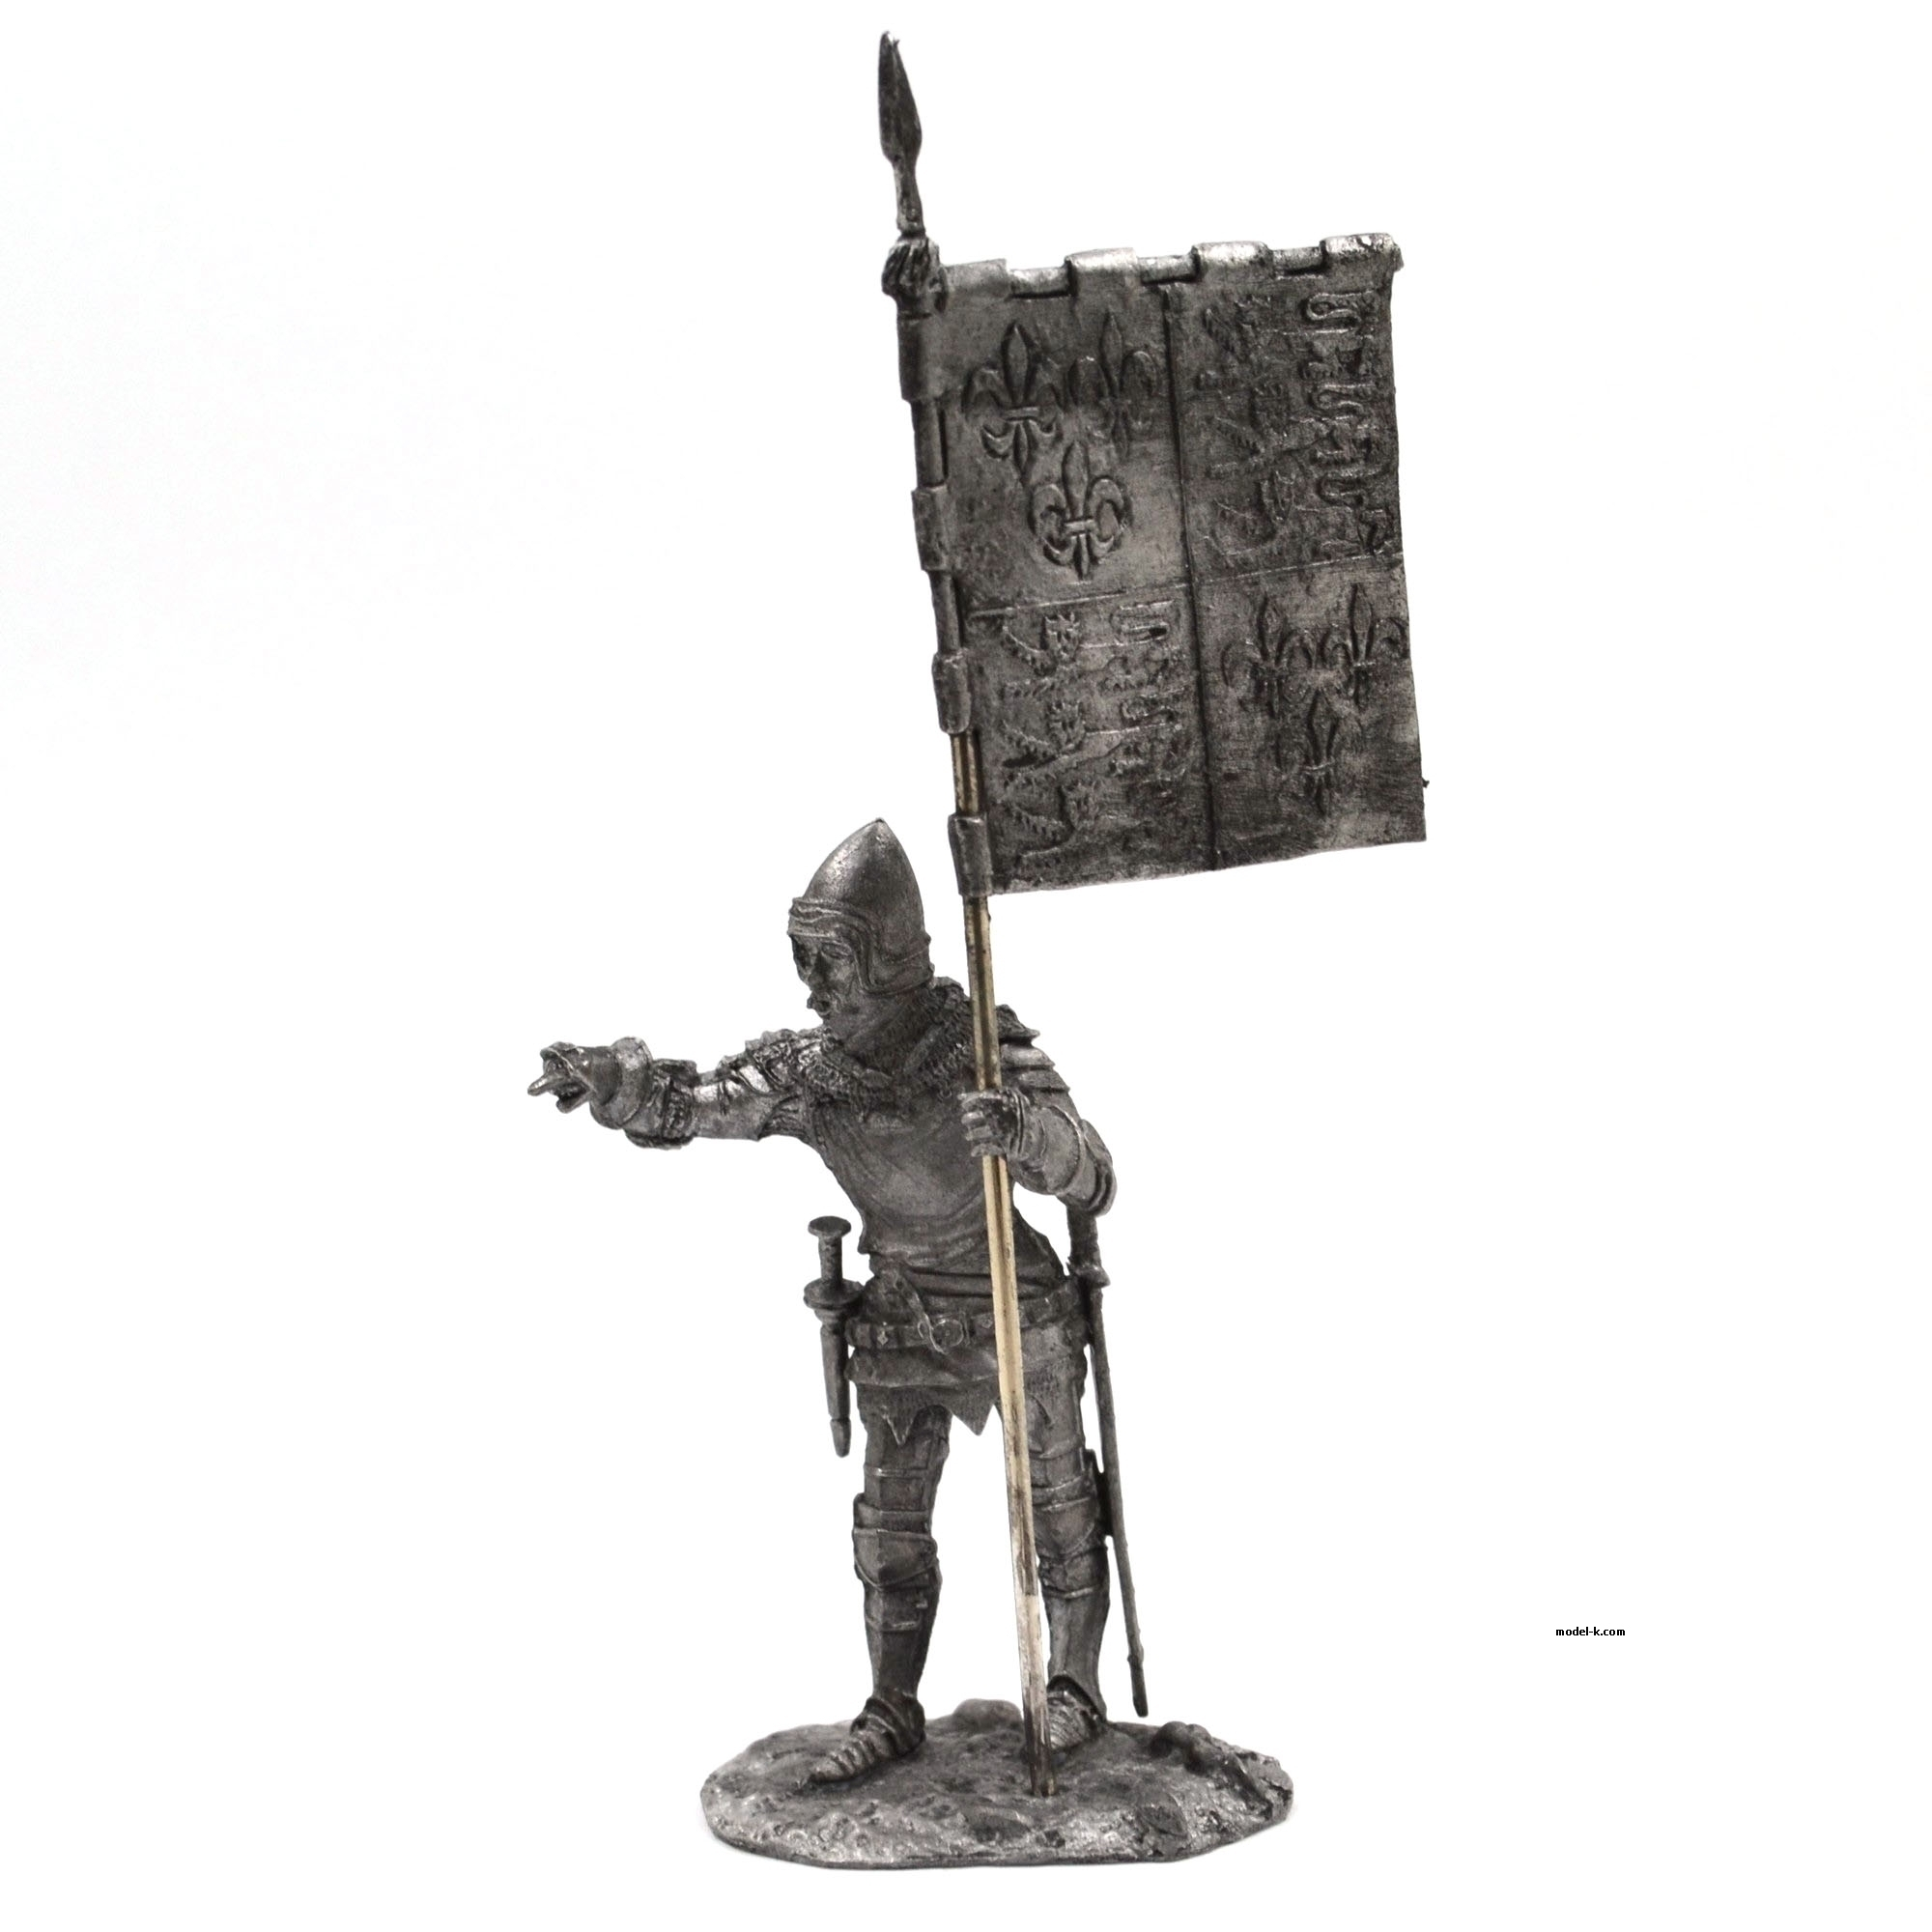 John Codrington 1:32 scale warrior